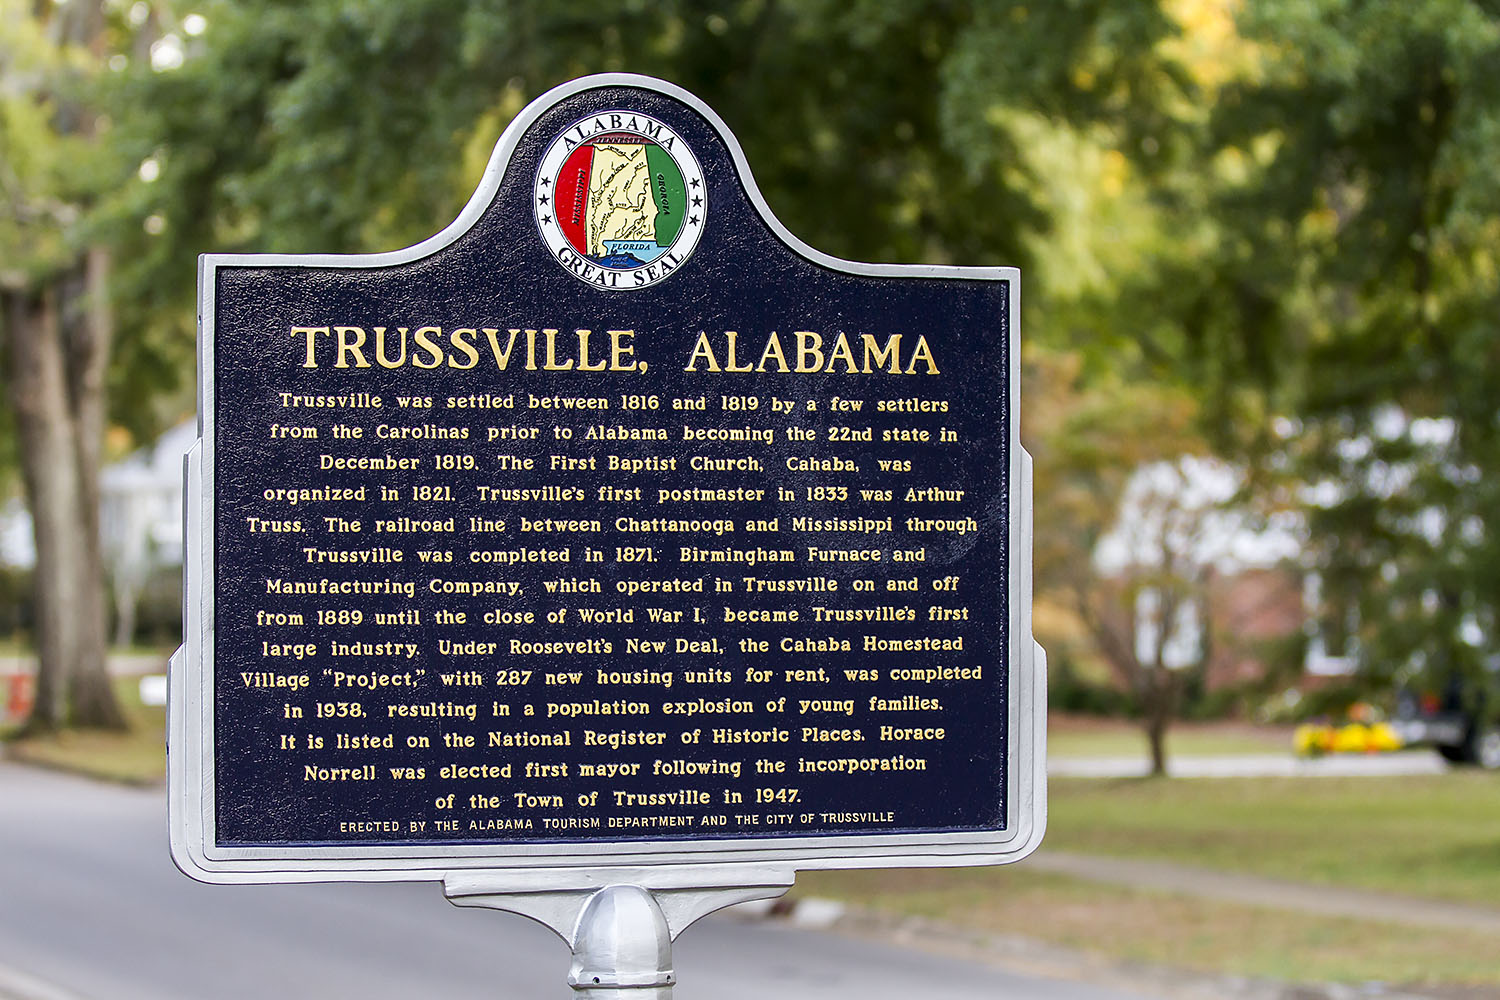 Website ranks safest Alabama cities: Where does Trussville rank?